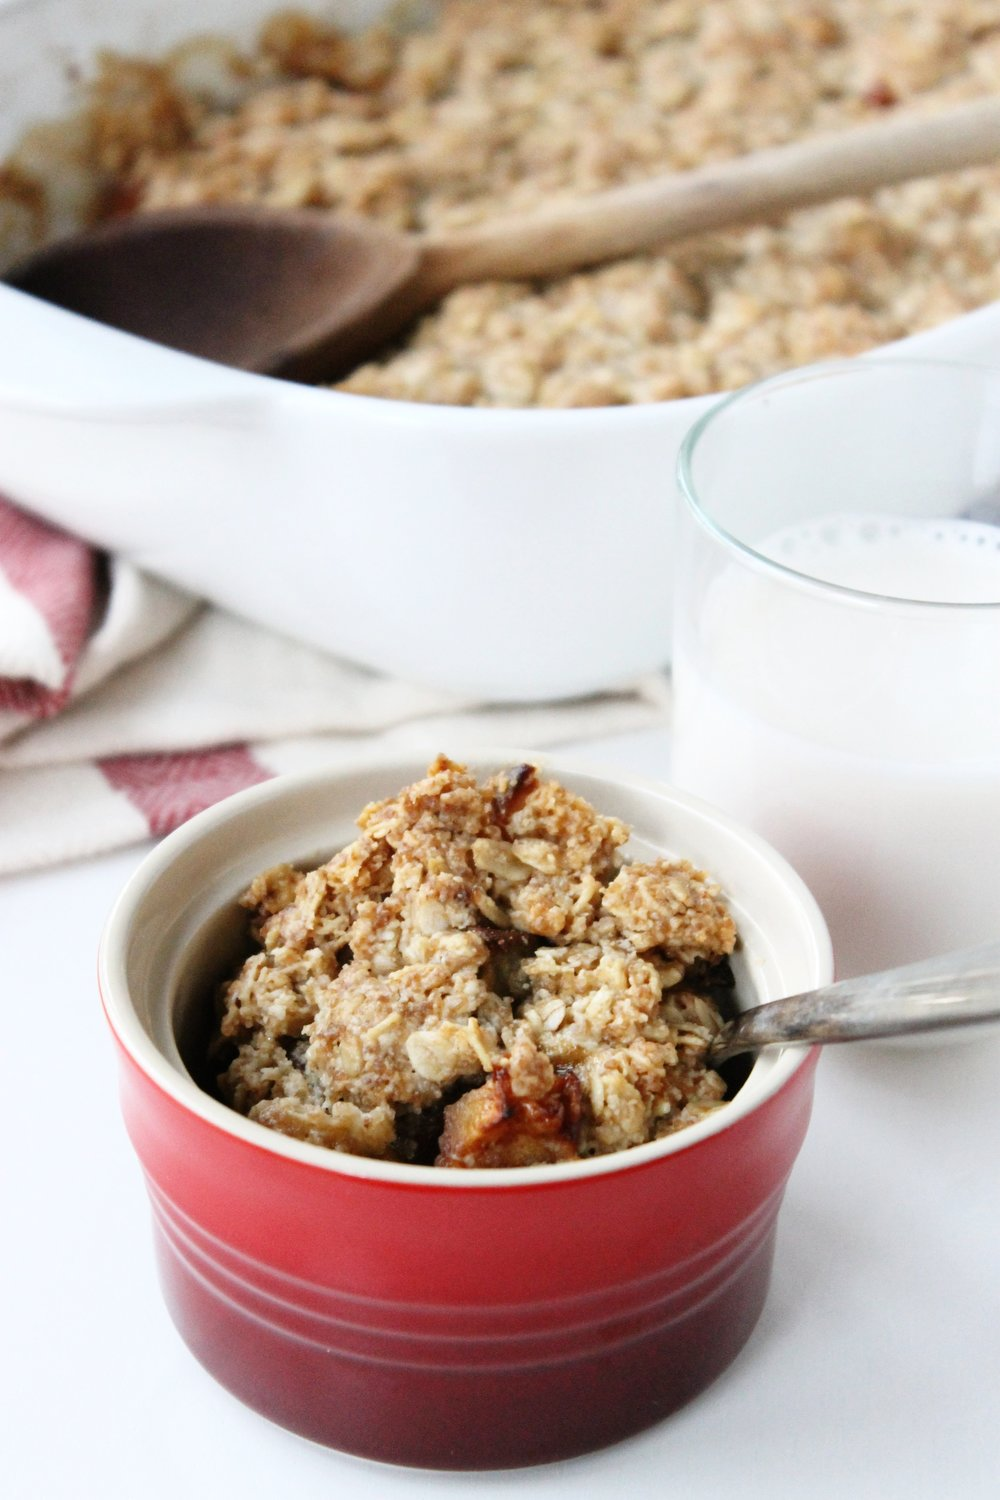 Gluten free pear and apple crumble | Beloved Kitchen